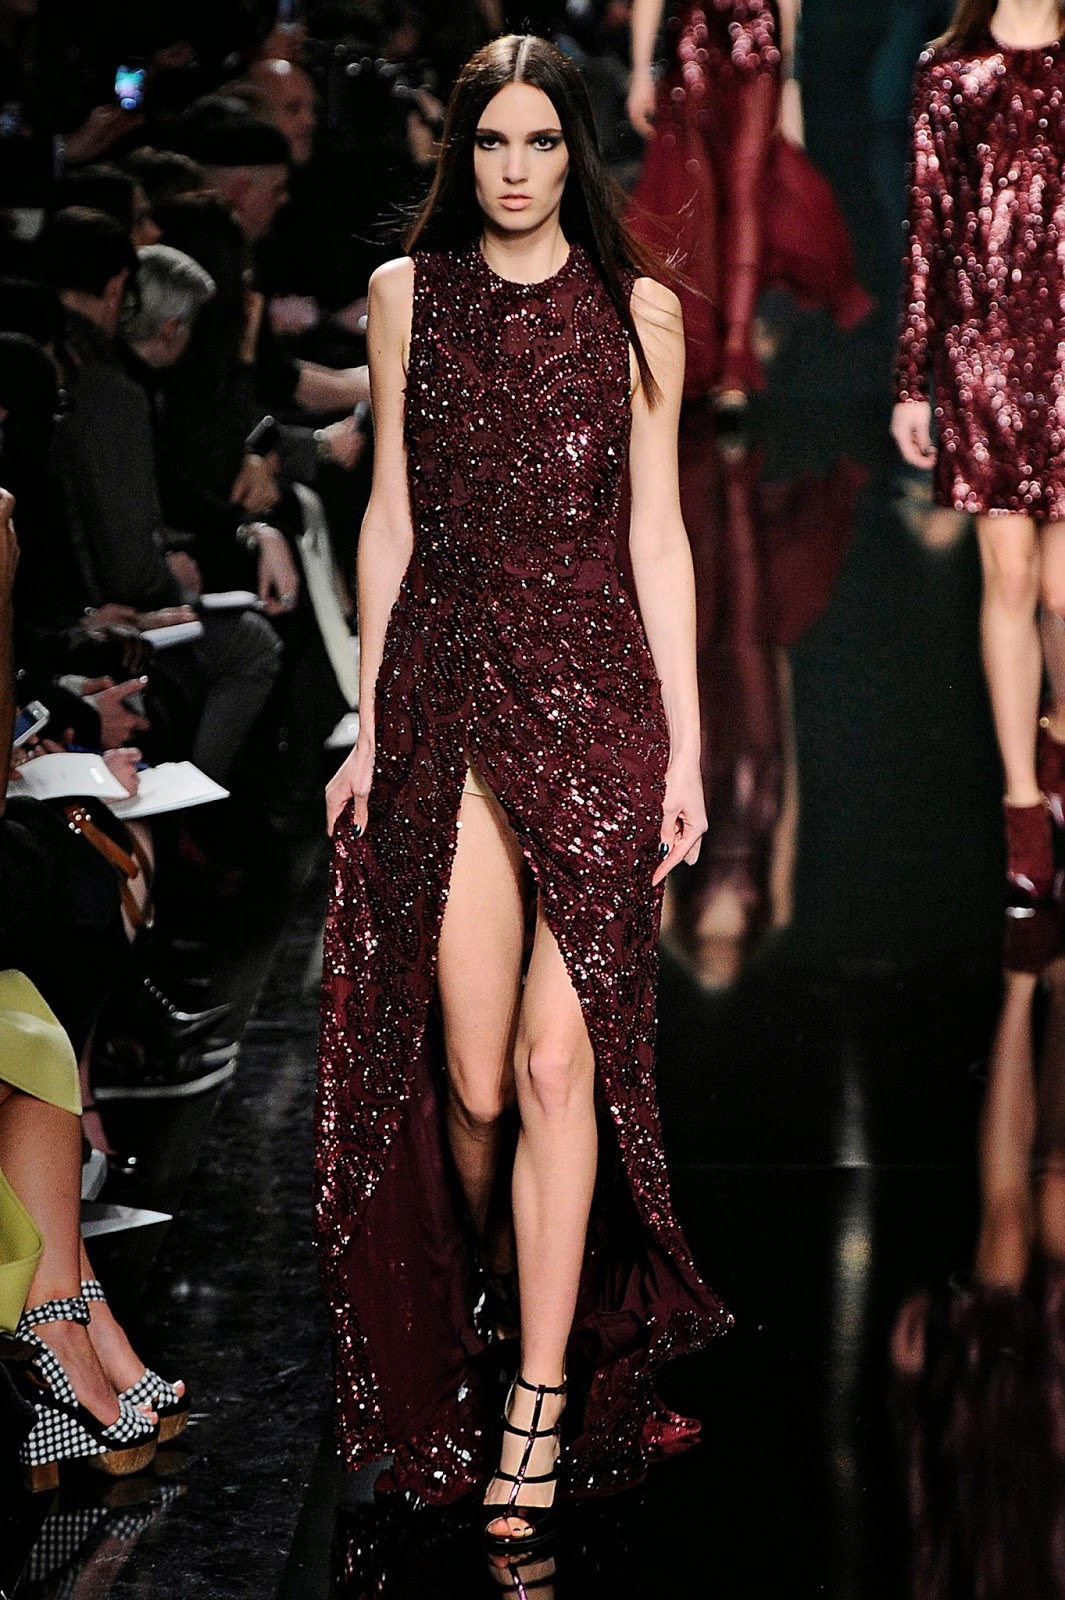 Fashion: Fall Winter 2014 Elie Saab Ready to Wear - Wallpaper Kingdom